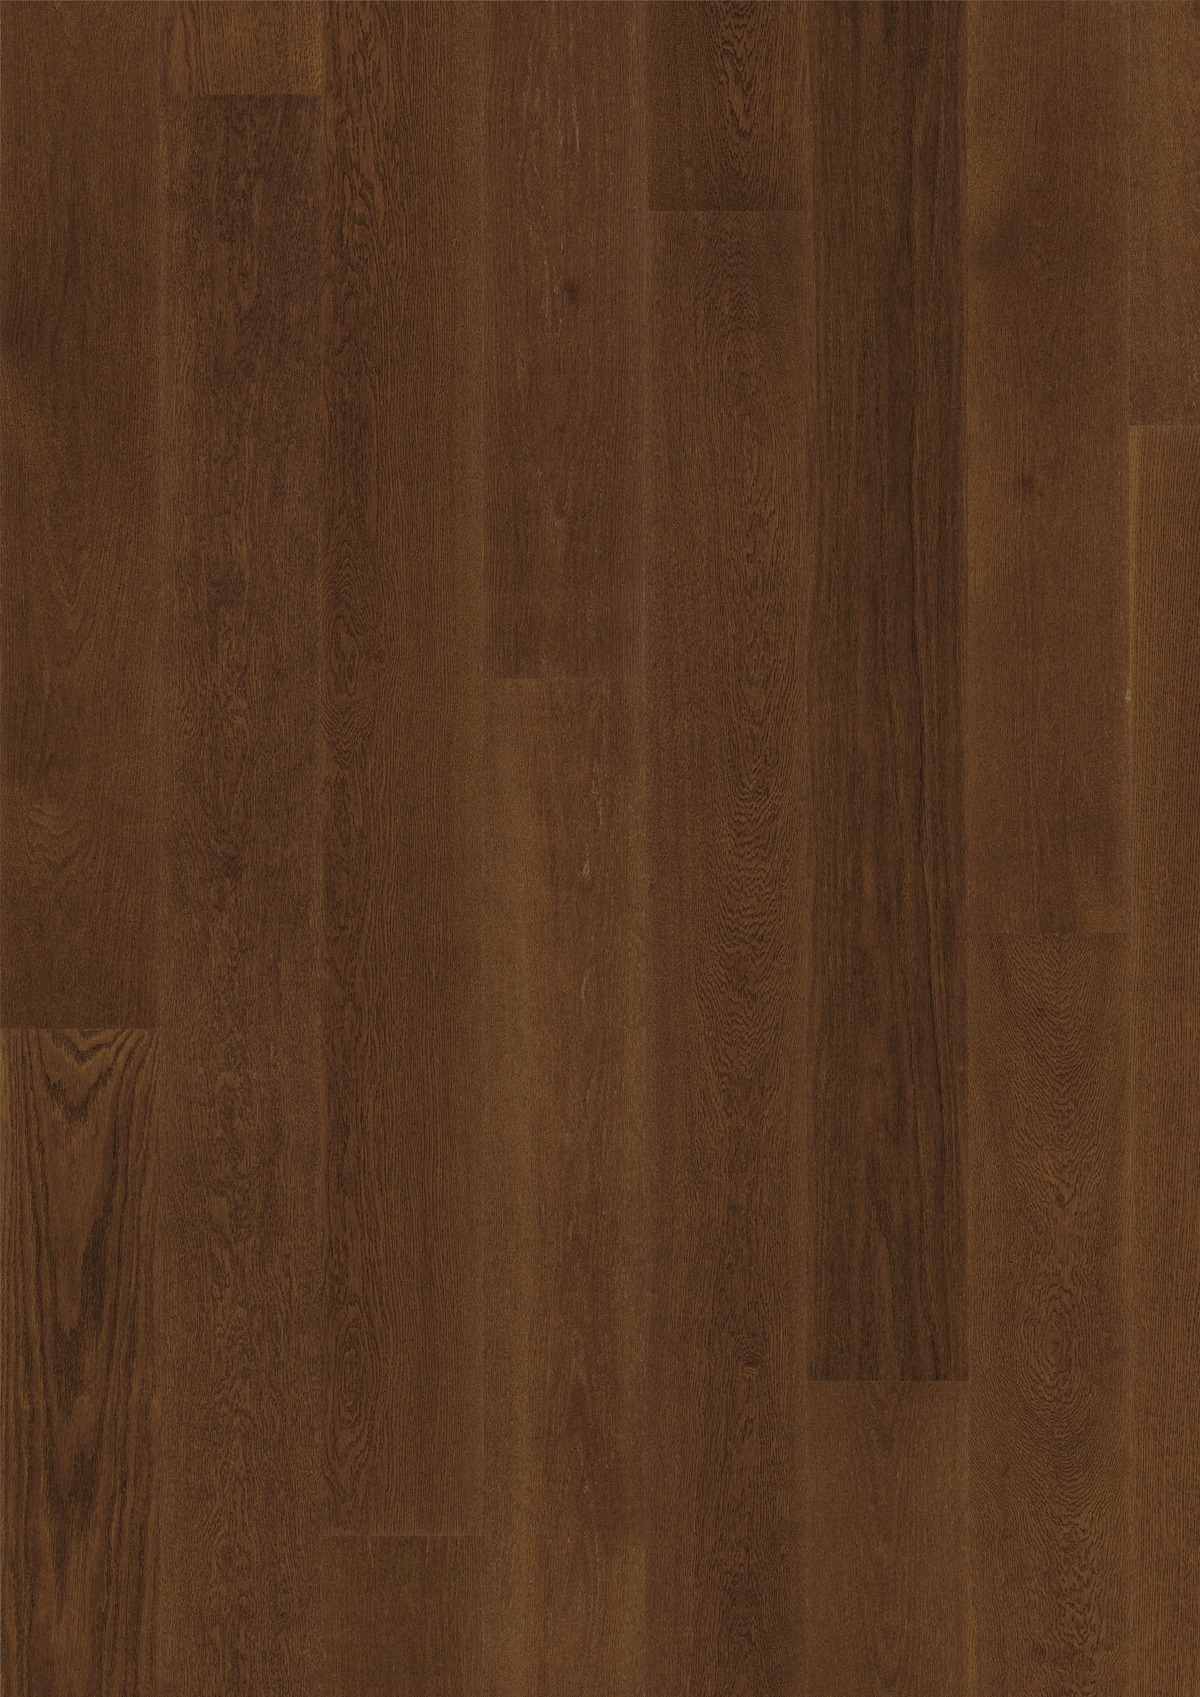 OAK FP BLACK PEPPER